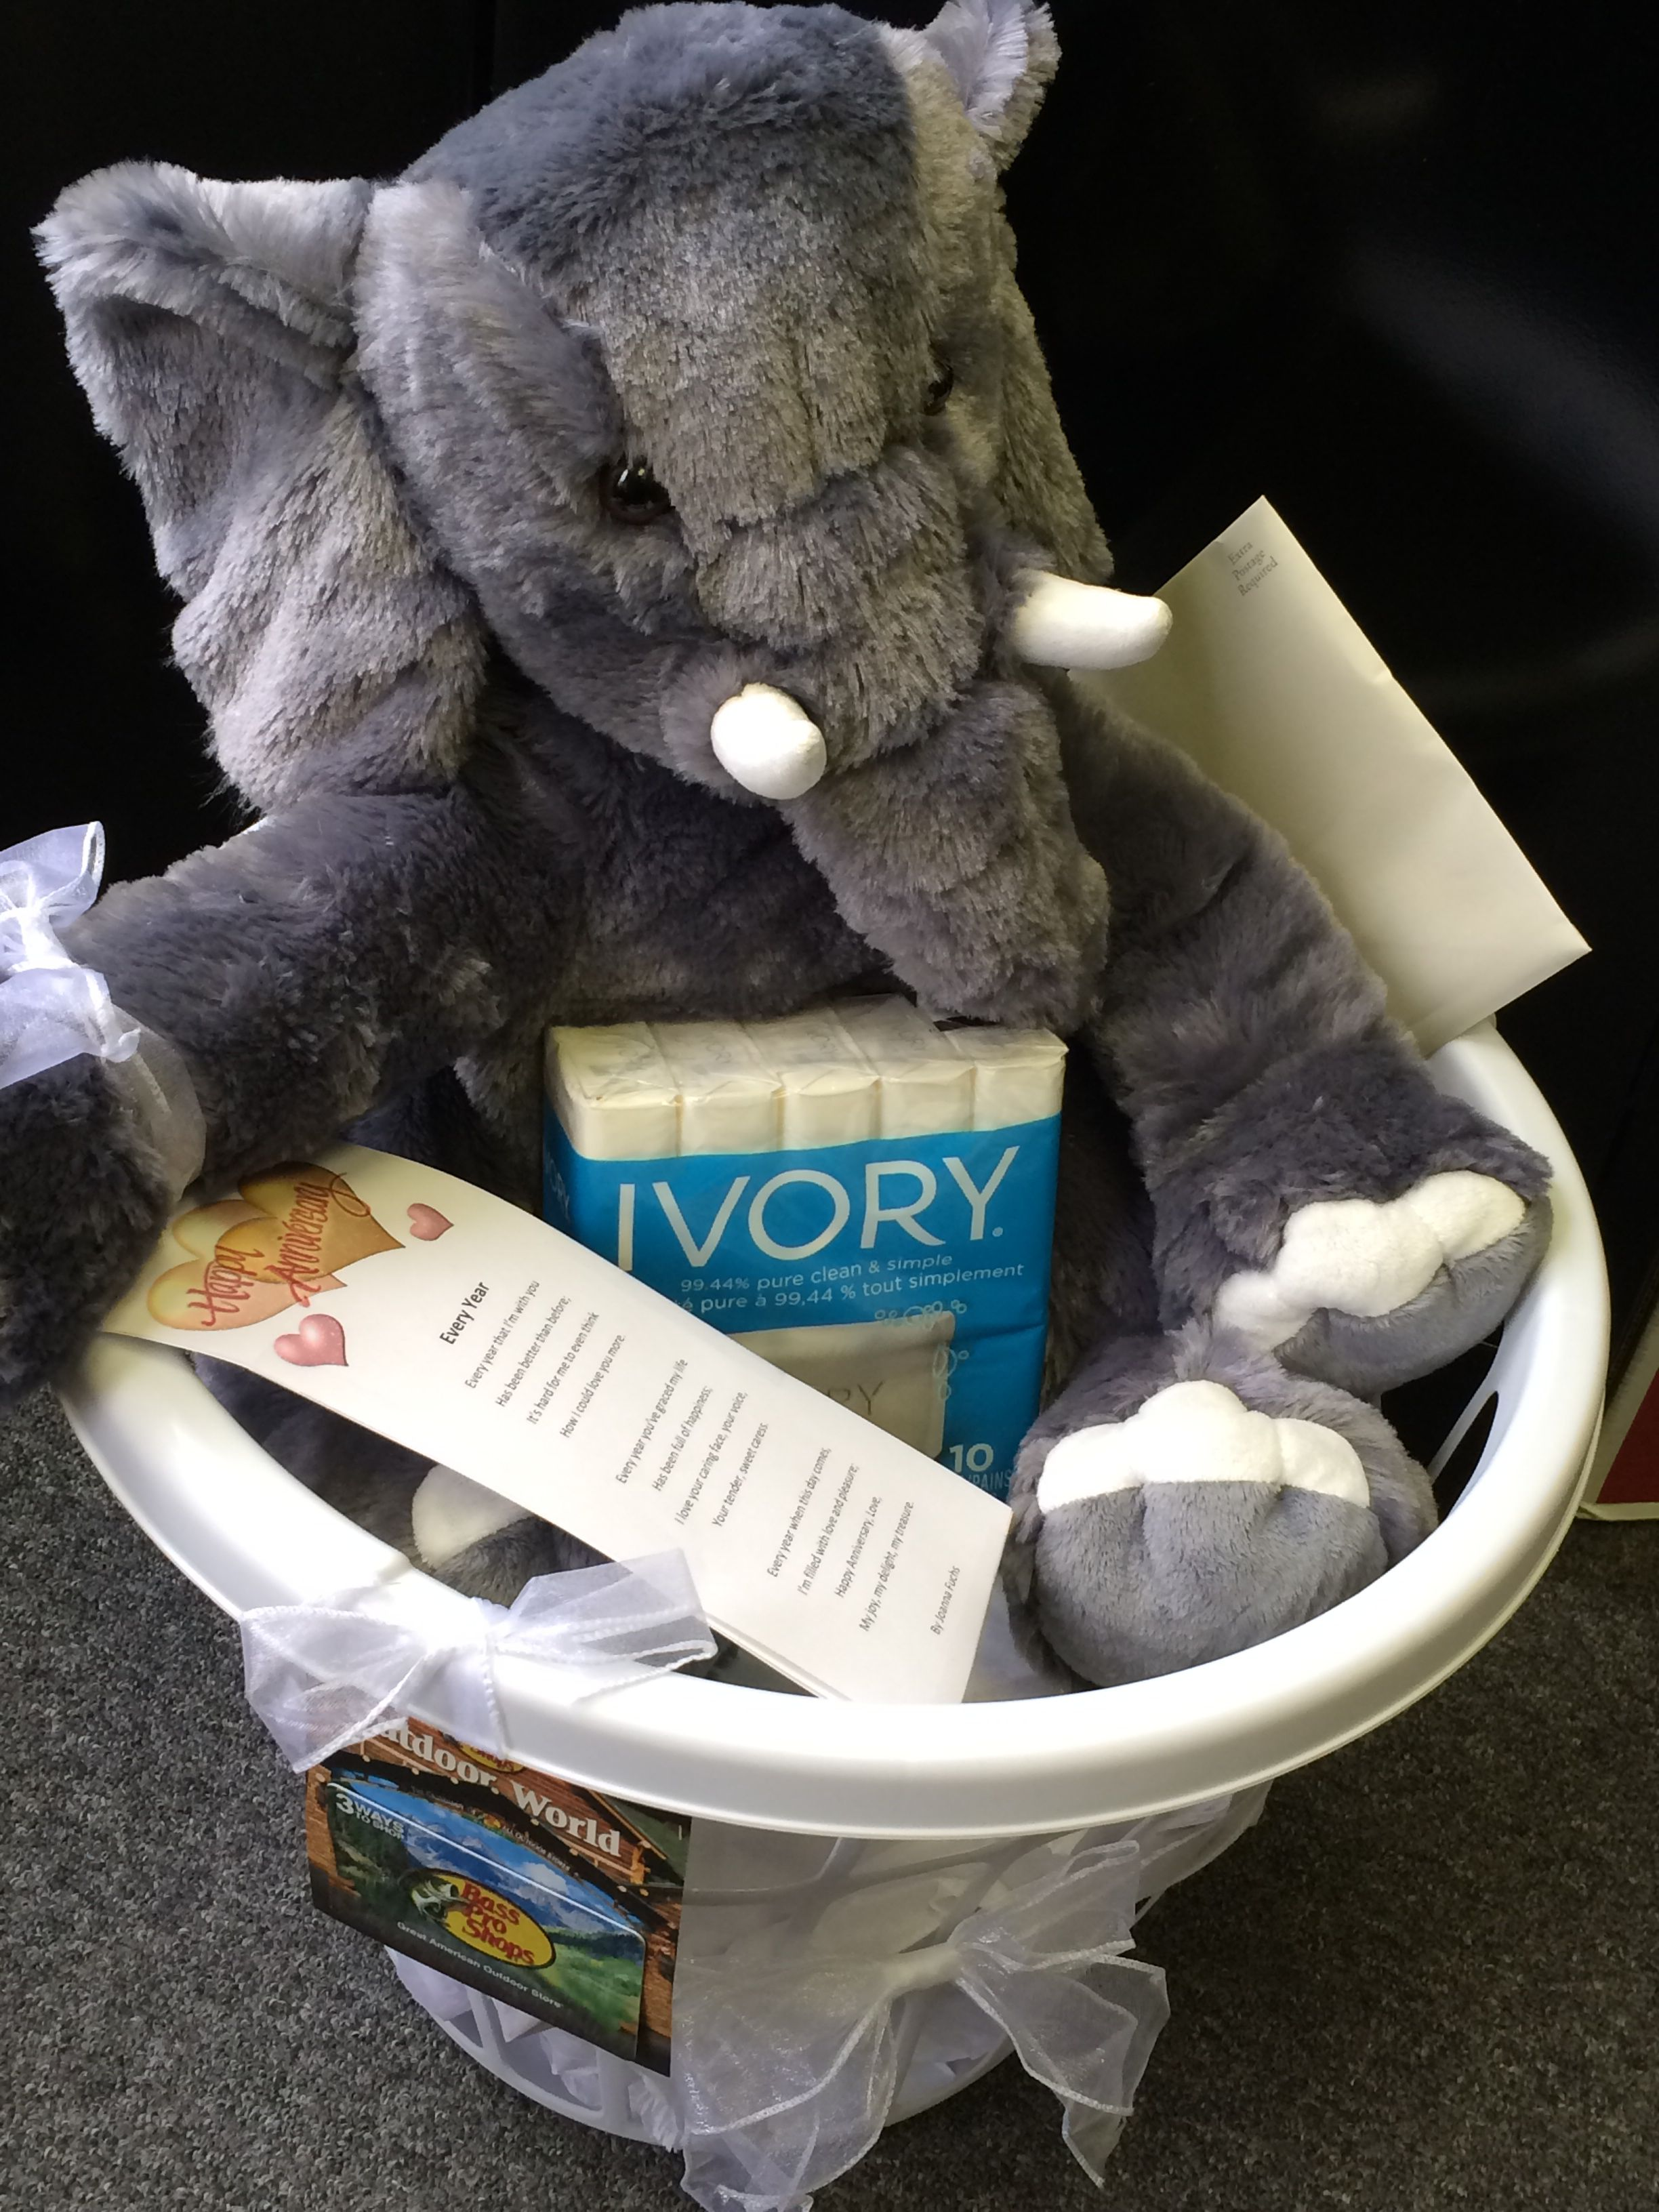 14th Anniversary Gift Ivory Is 14 Year Idea And So I Did A Little Spin On This With Soap Stuffed Elephant Basket